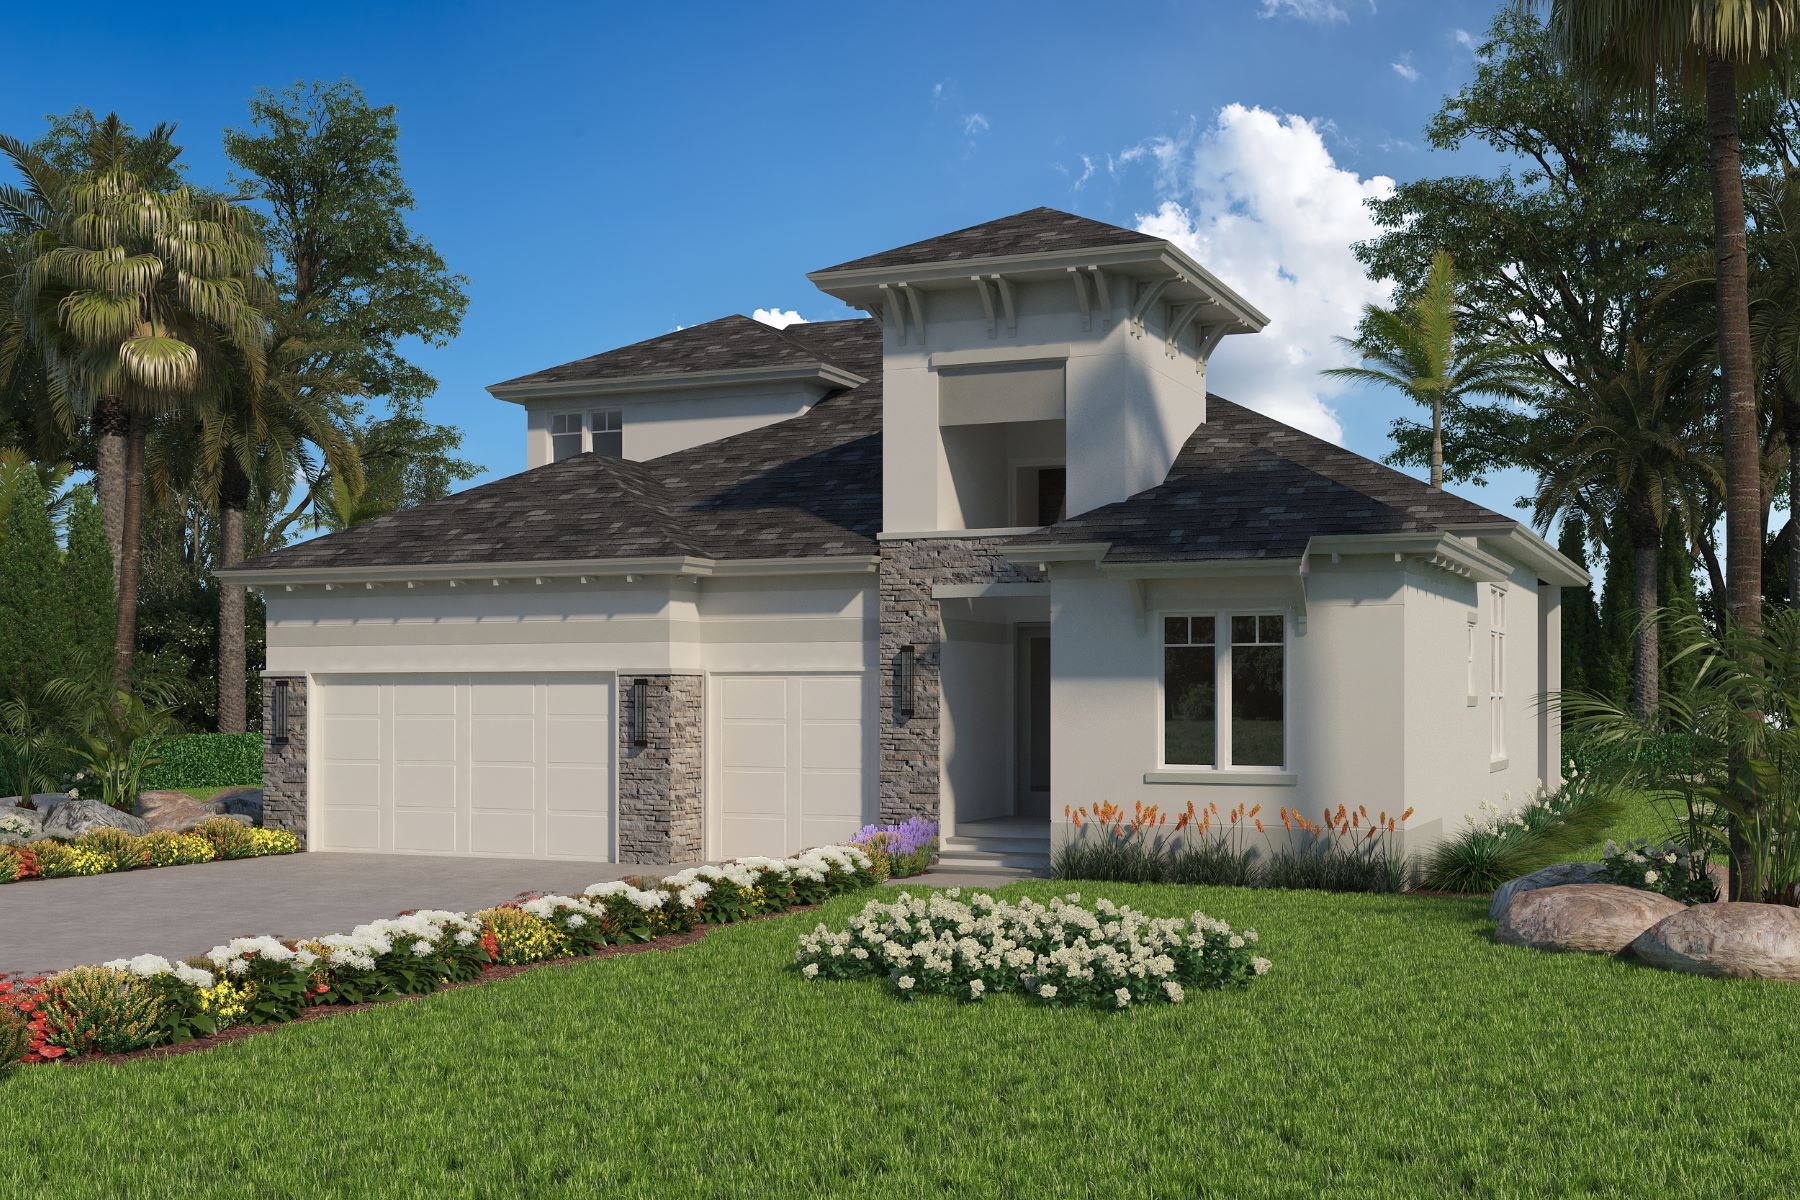 Single Family Homes for Sale at 9237 Orchid Cove Circle Vero Beach, Florida 32963 United States